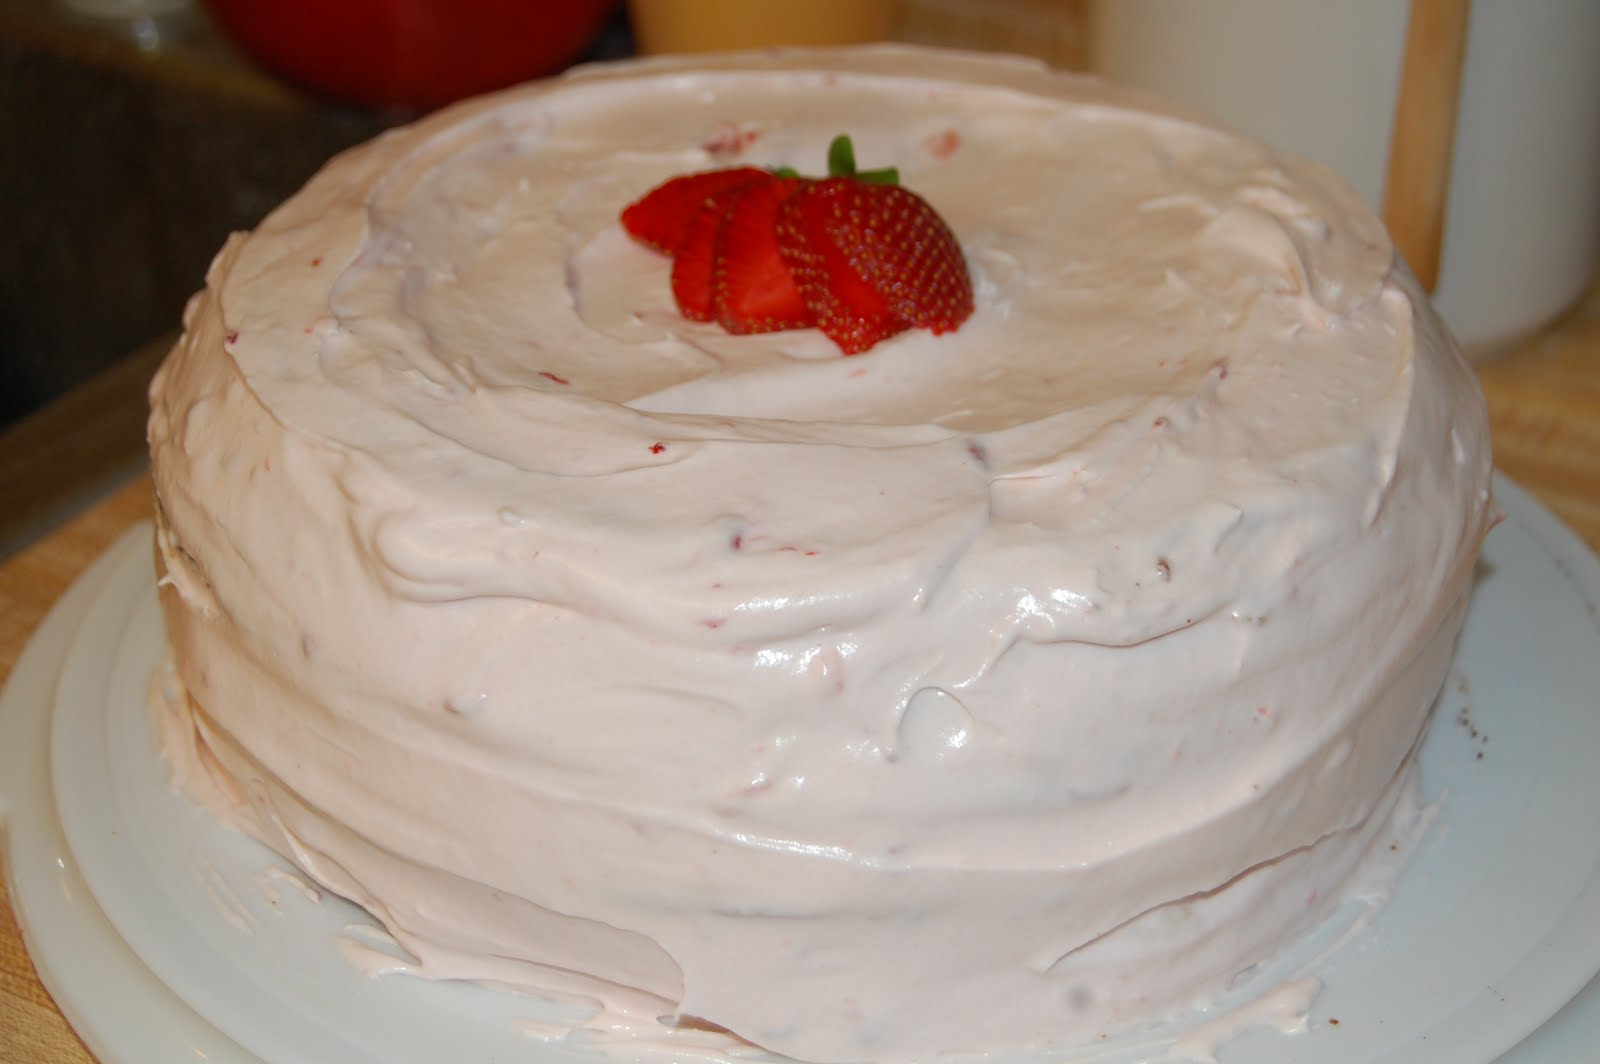 Strawberry Homemade Cakes Viewing Gallery